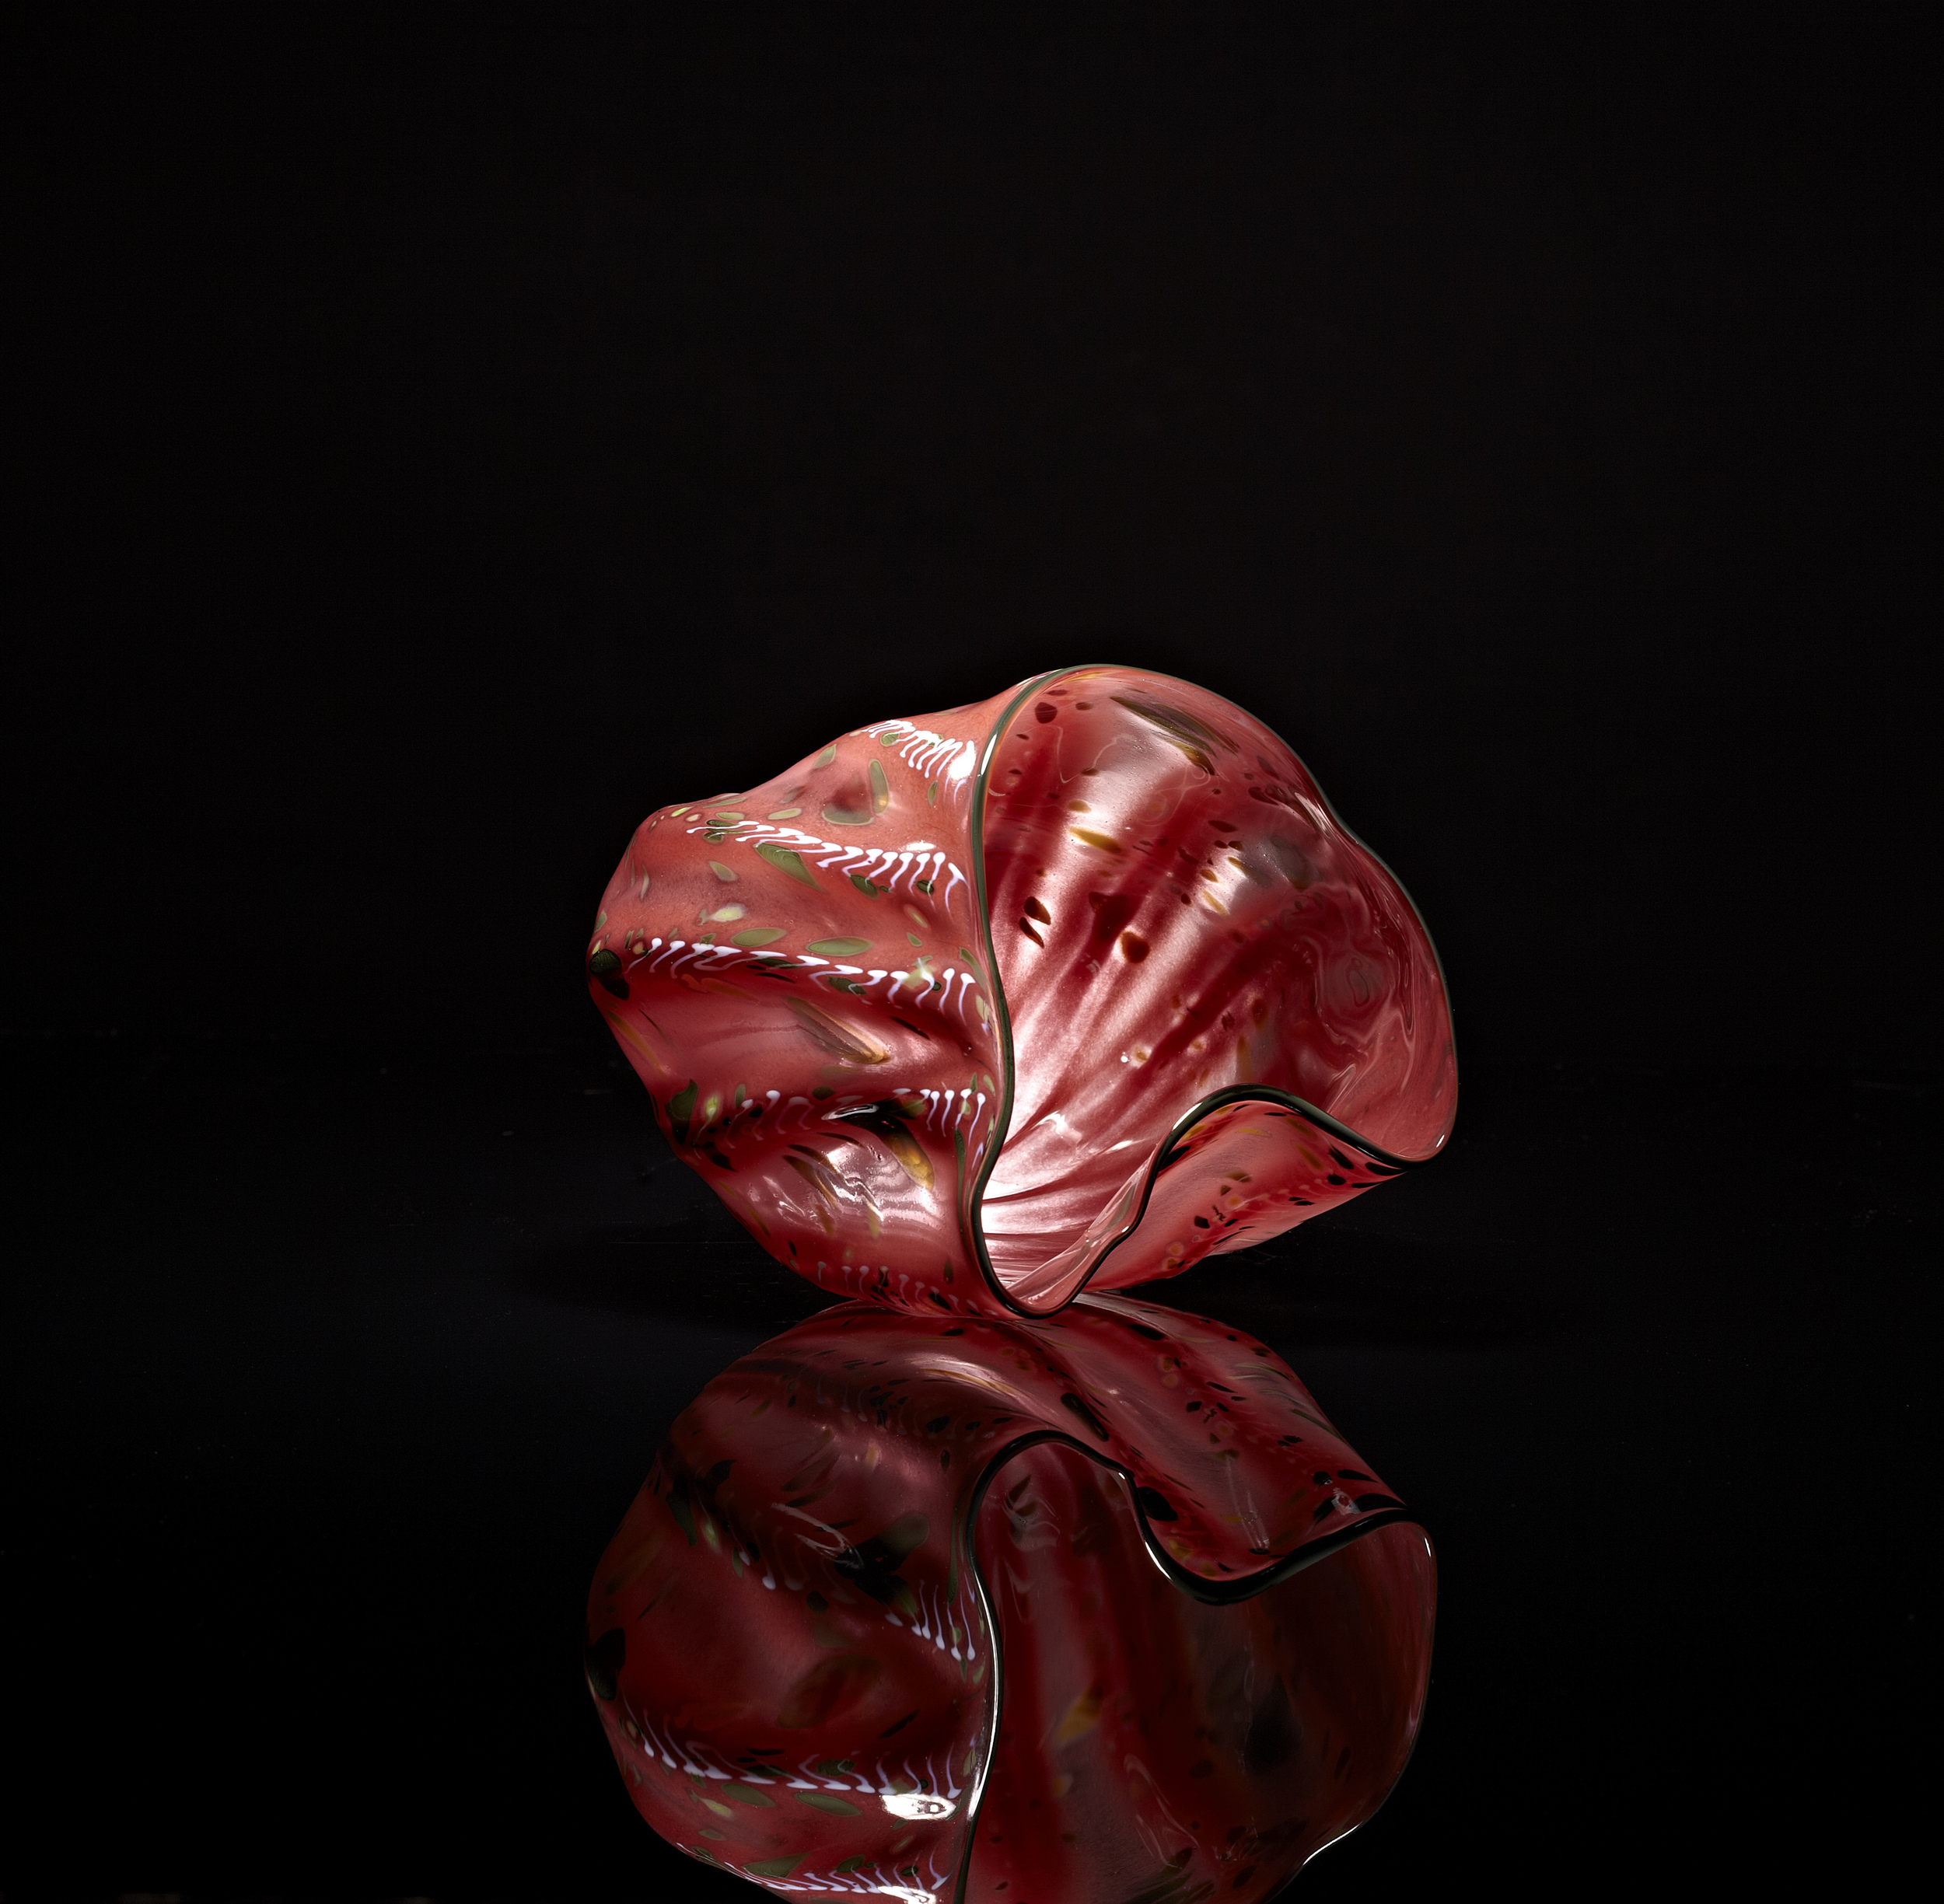 Dale Chihuly, Ruby Pink Macchia with Forest Green Lip Wrap (1982, glass, 7 x 7 x 7 inches), DC.139